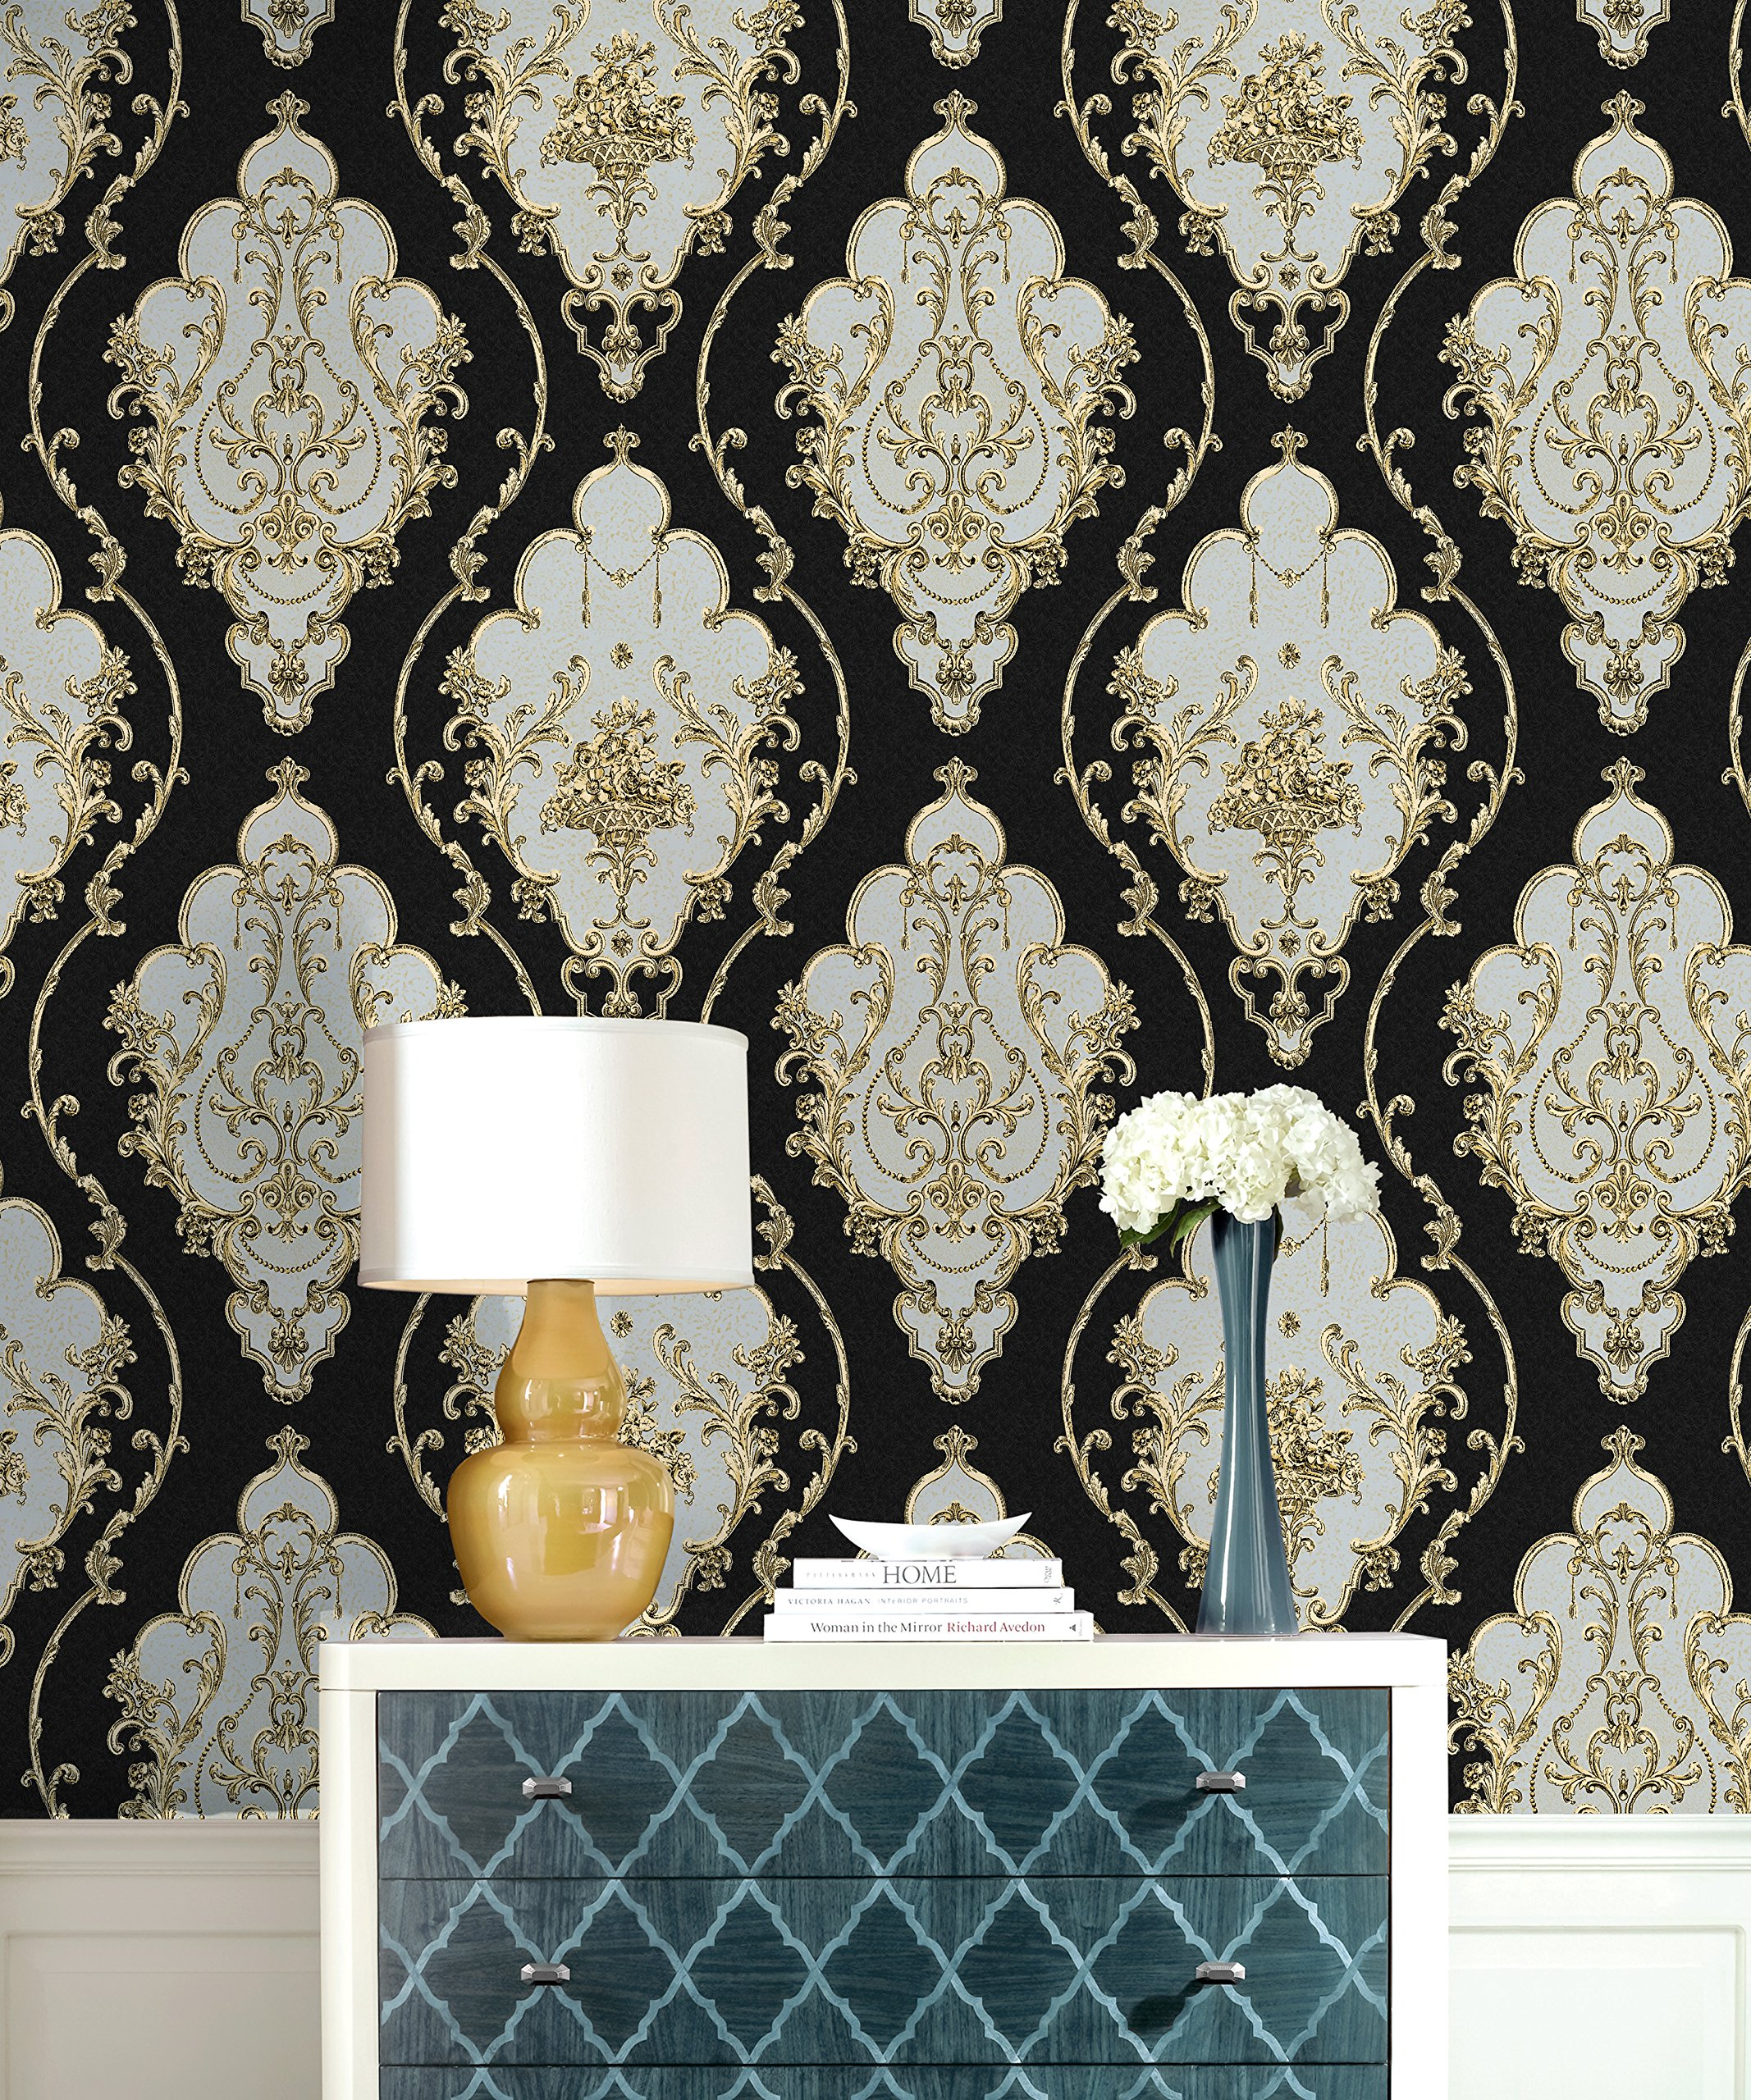 HaokHome 360207 Luxury Heavy Texture Victorian Damask Wallpaper Black/Gold/Brown/Silver for Home Accent Wall 20.8''x 31ft by HAOKHOME (Image #2)